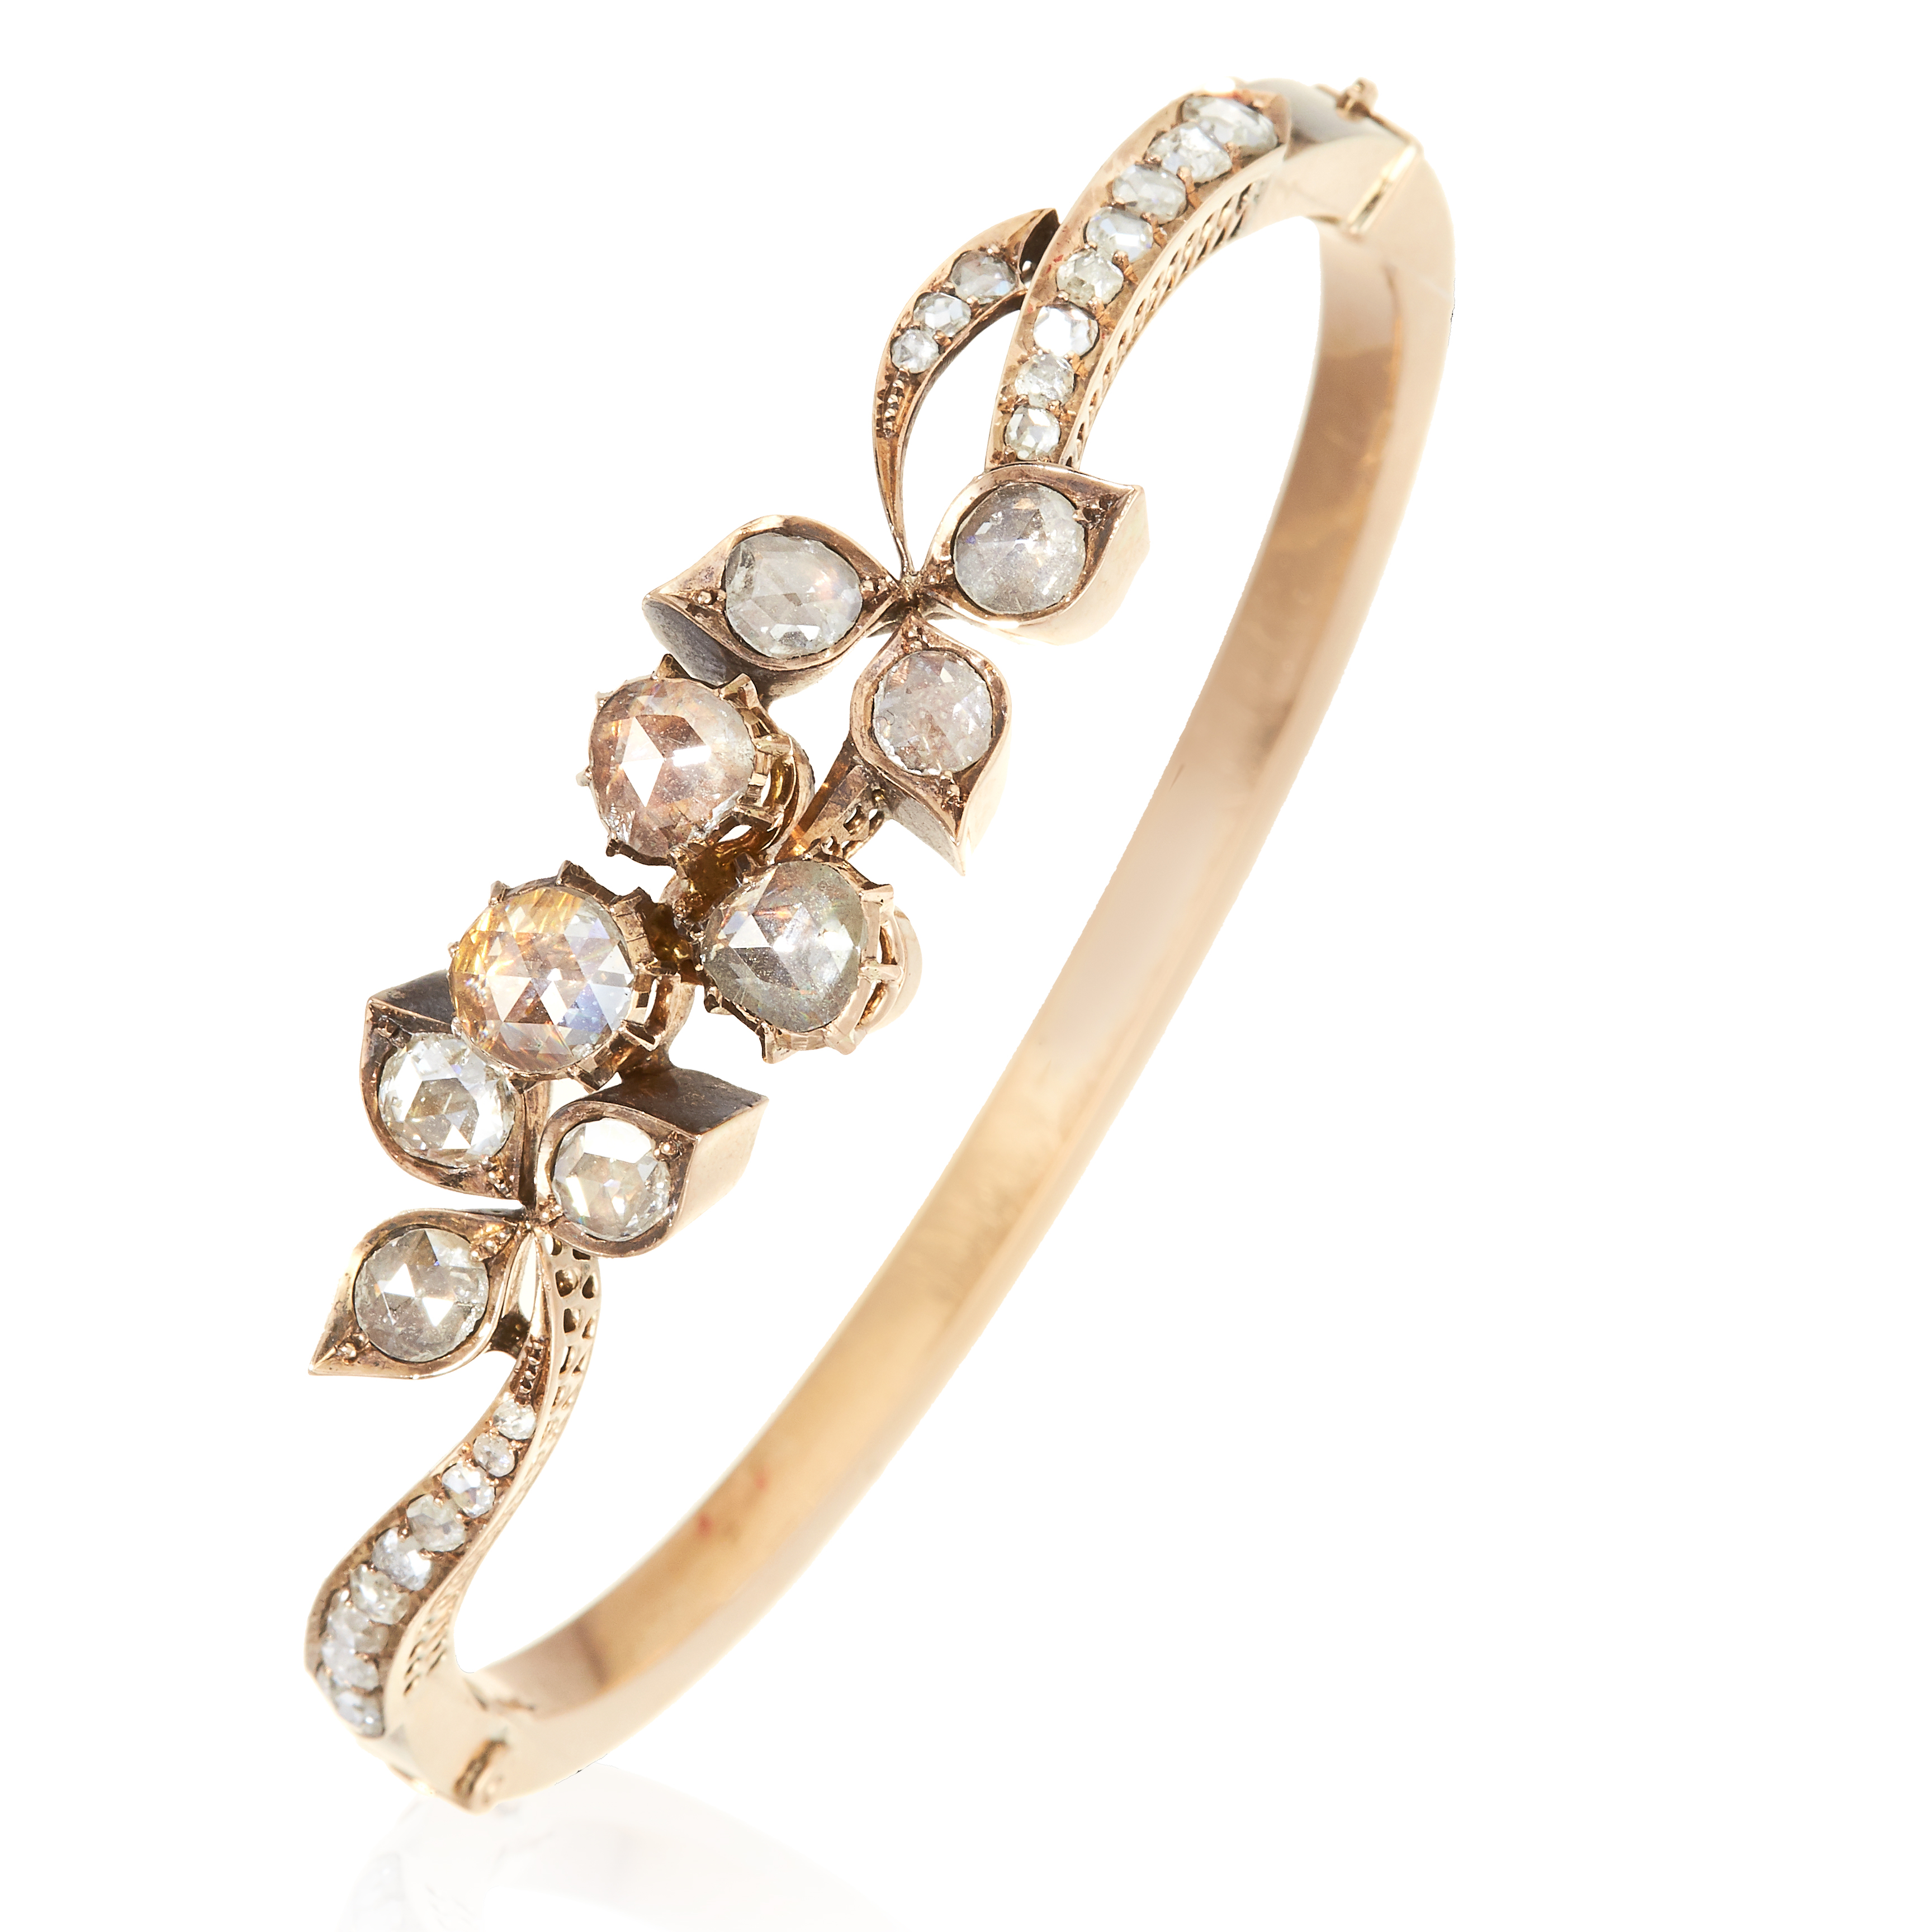 Los 16 - AN ANTIQUE DIAMOND BANGLE, 19TH CENTURY in high carat yellow gold, the foliate motif jewelled with